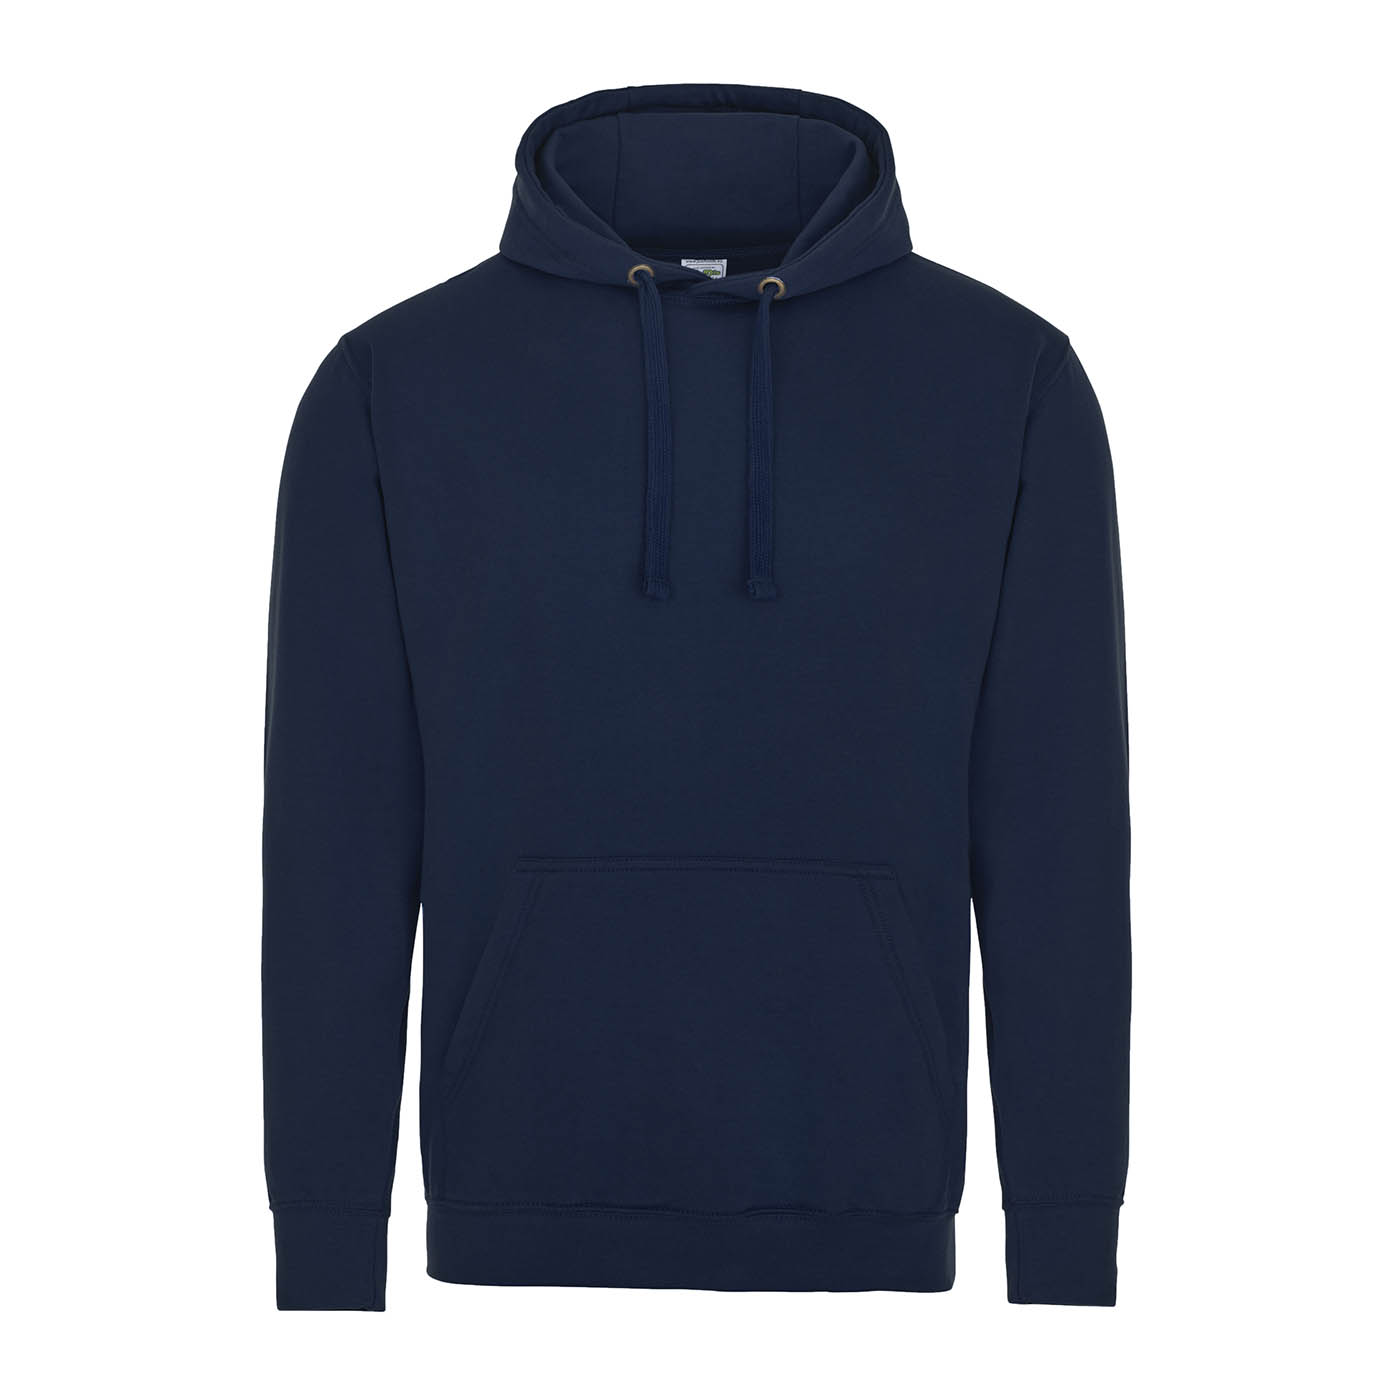 NAVY HOODED SWEATER